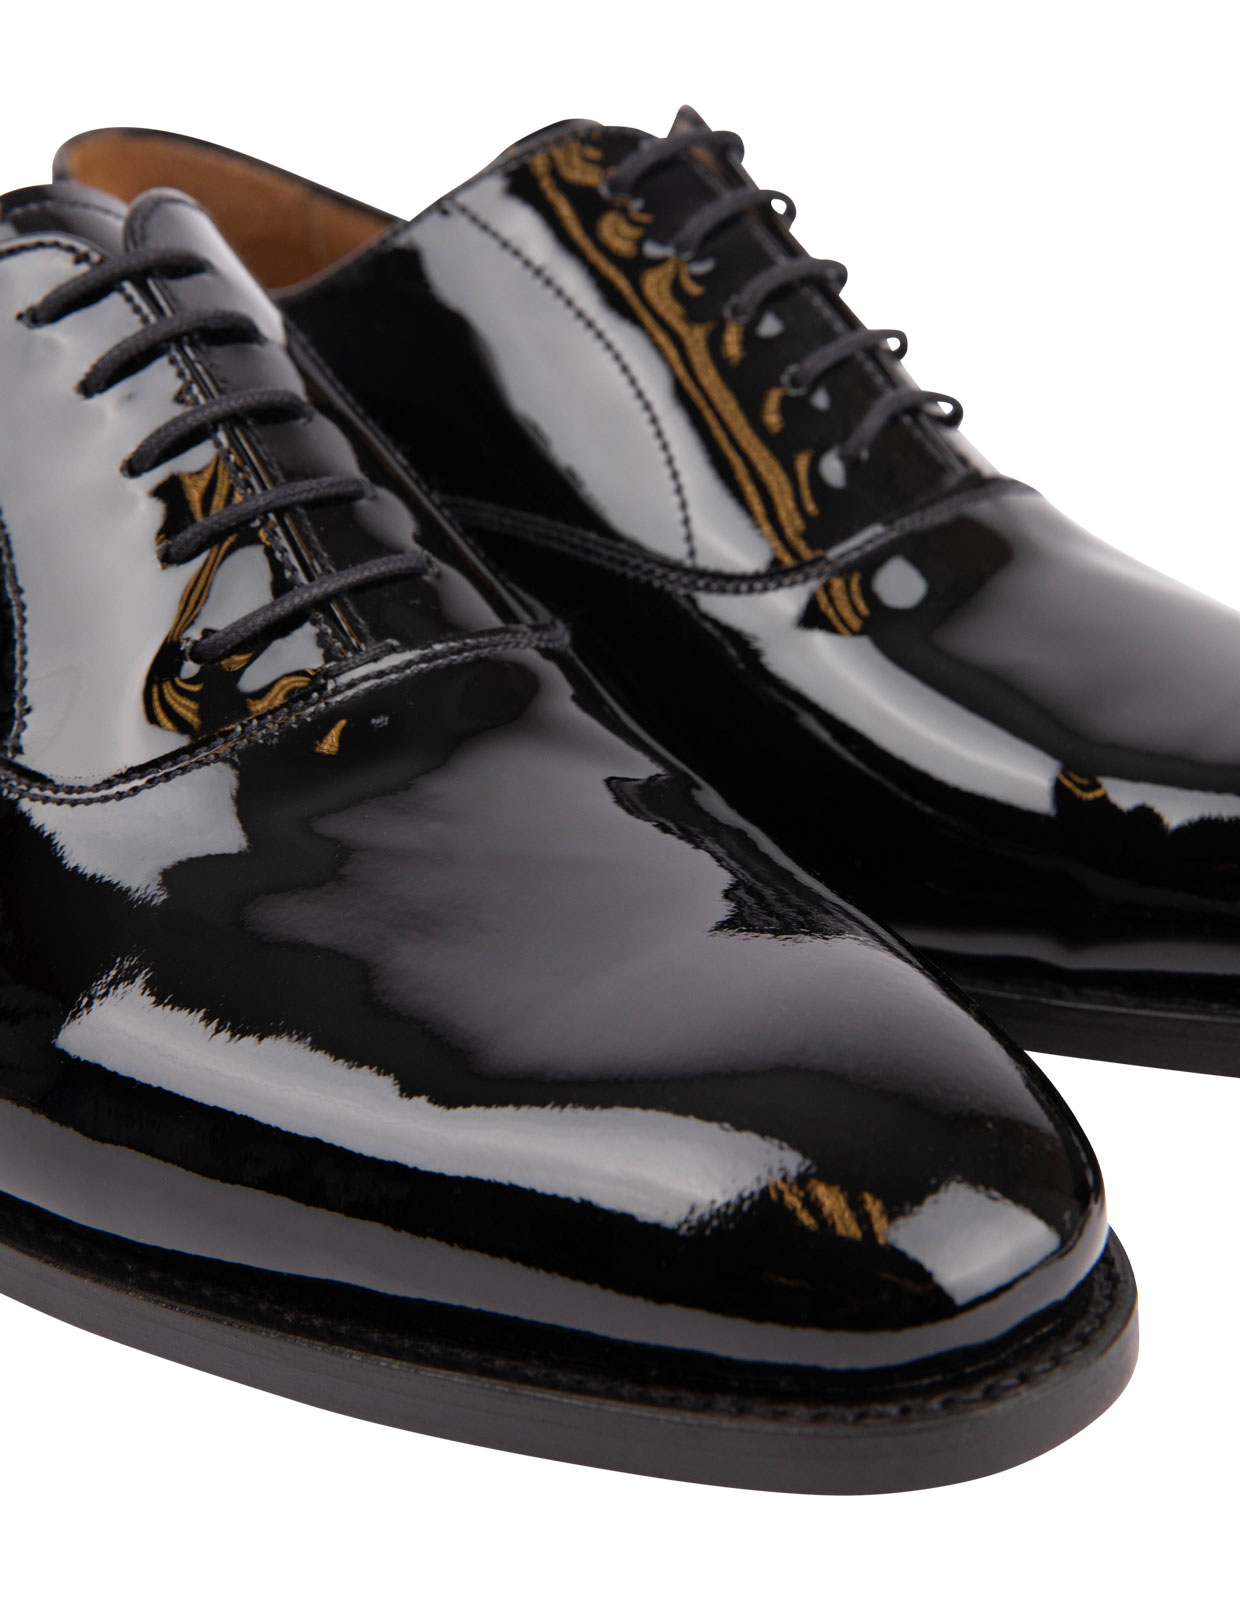 Patent Leather Allen Oxford Lacksko Black Stl 9